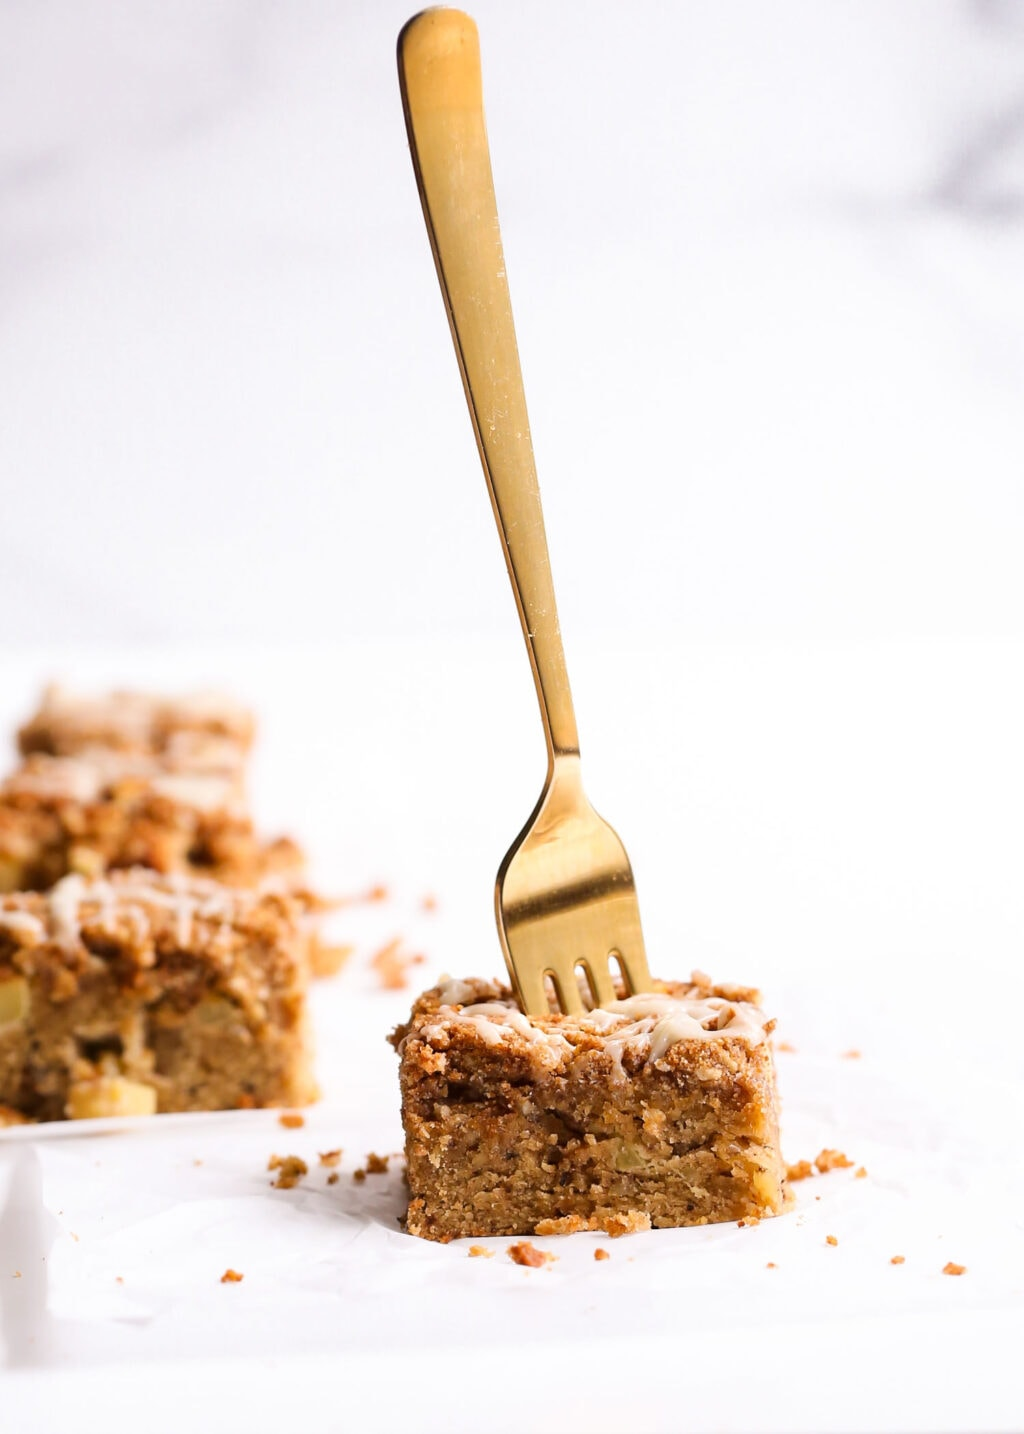 Apple Coffee Cake with a gold fork sticking out.